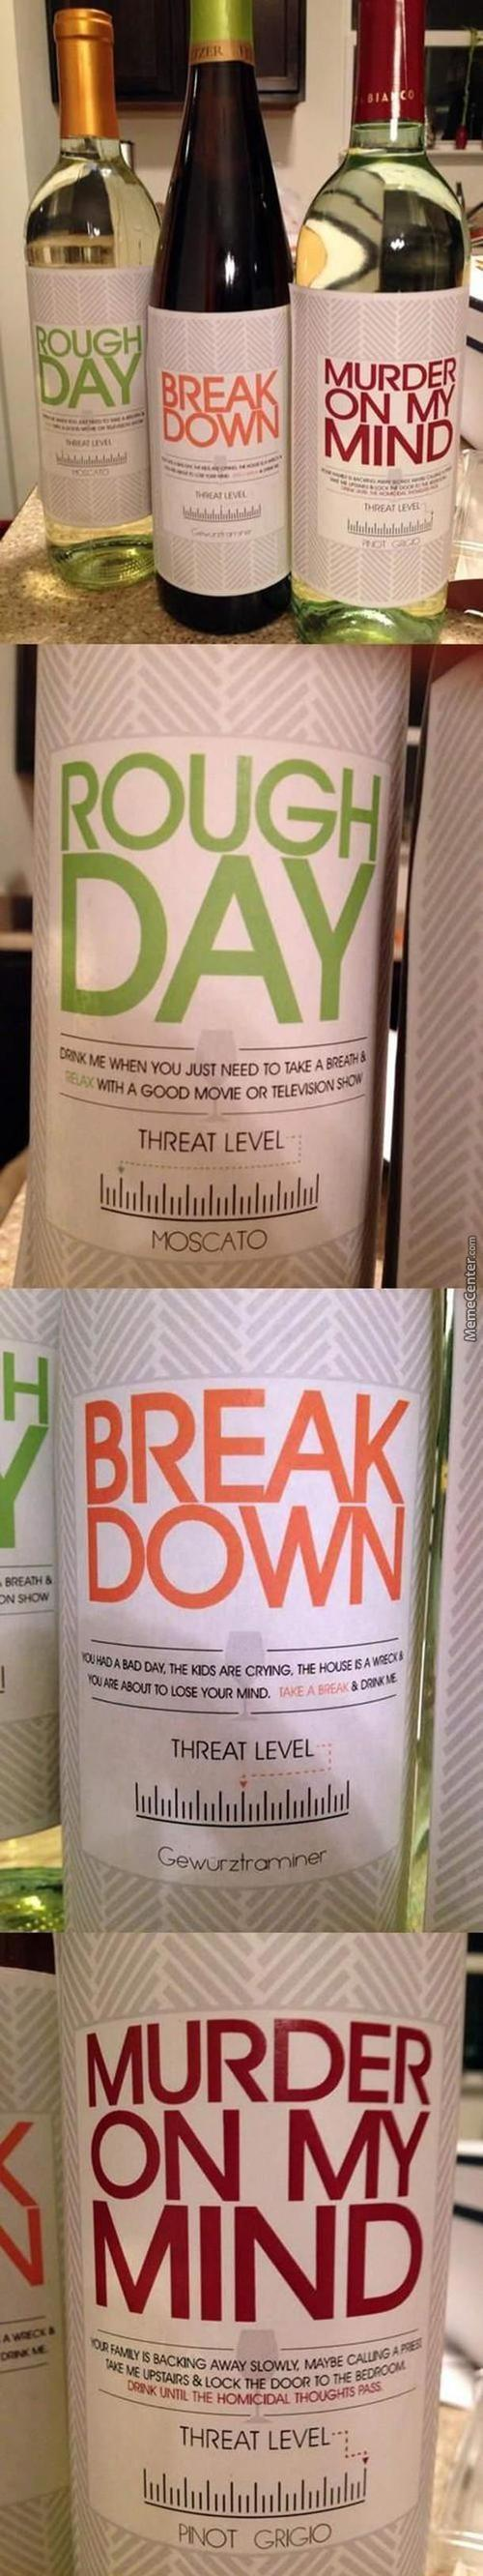 Honest Wine Labels